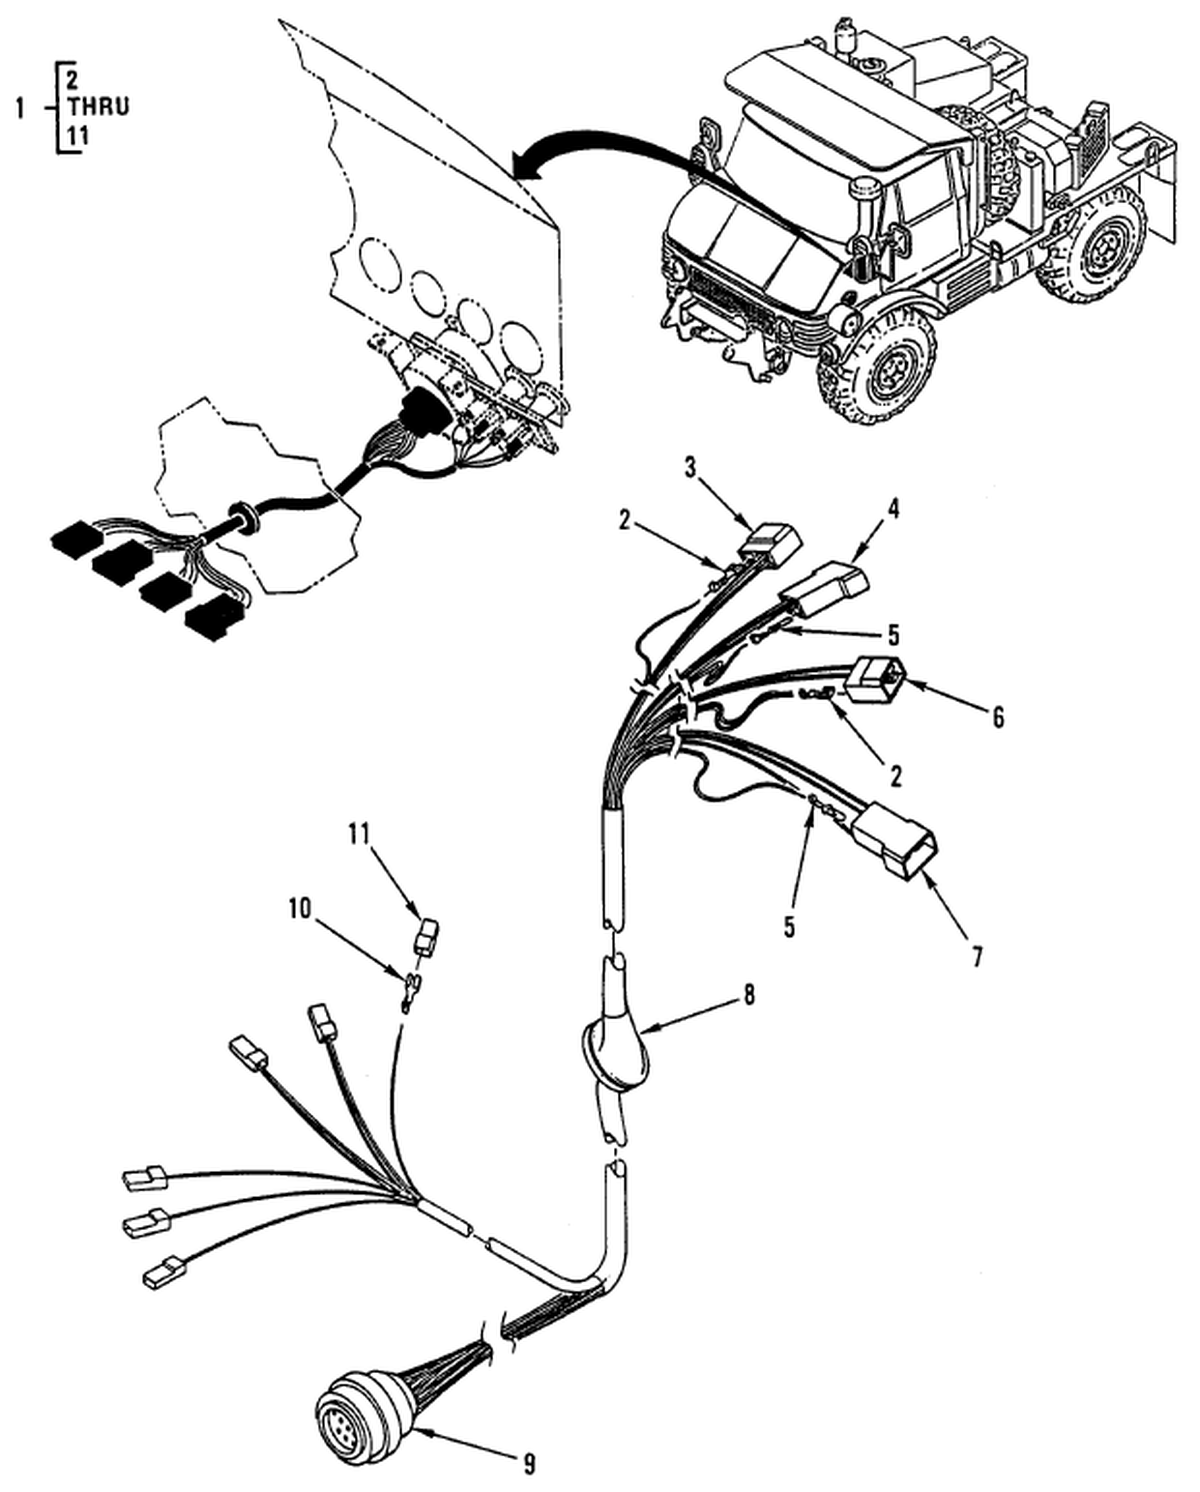 0108 00-2 Figure 107. Hull or Chassis Wiring Harness